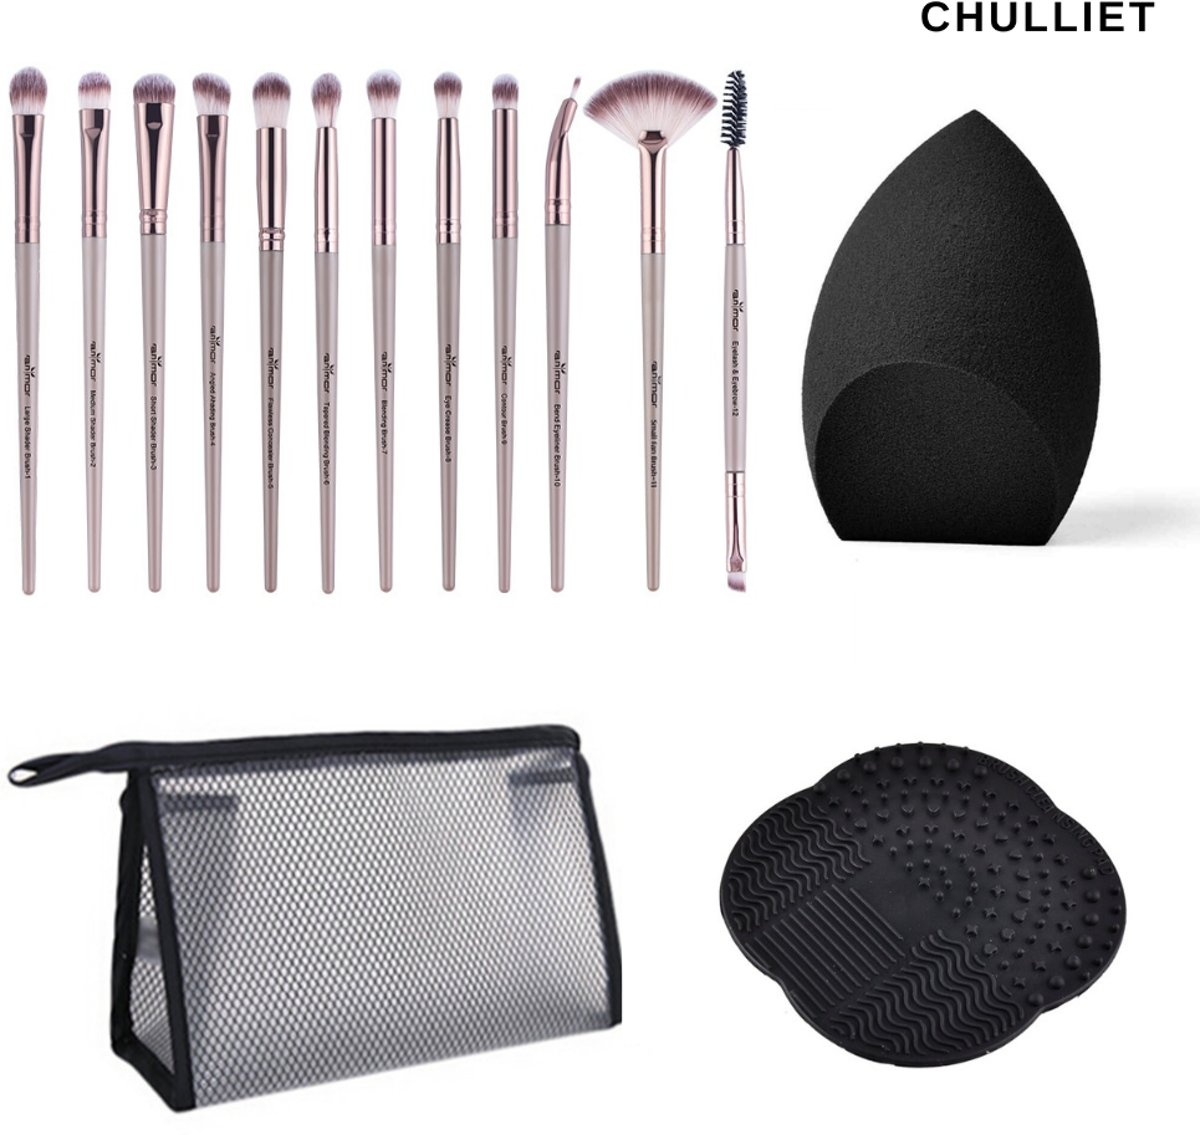 Chulliet – Complete 12-delige make-up kwastenset – Inclusief Beauty Blender – Kwastenreiniger – Etui